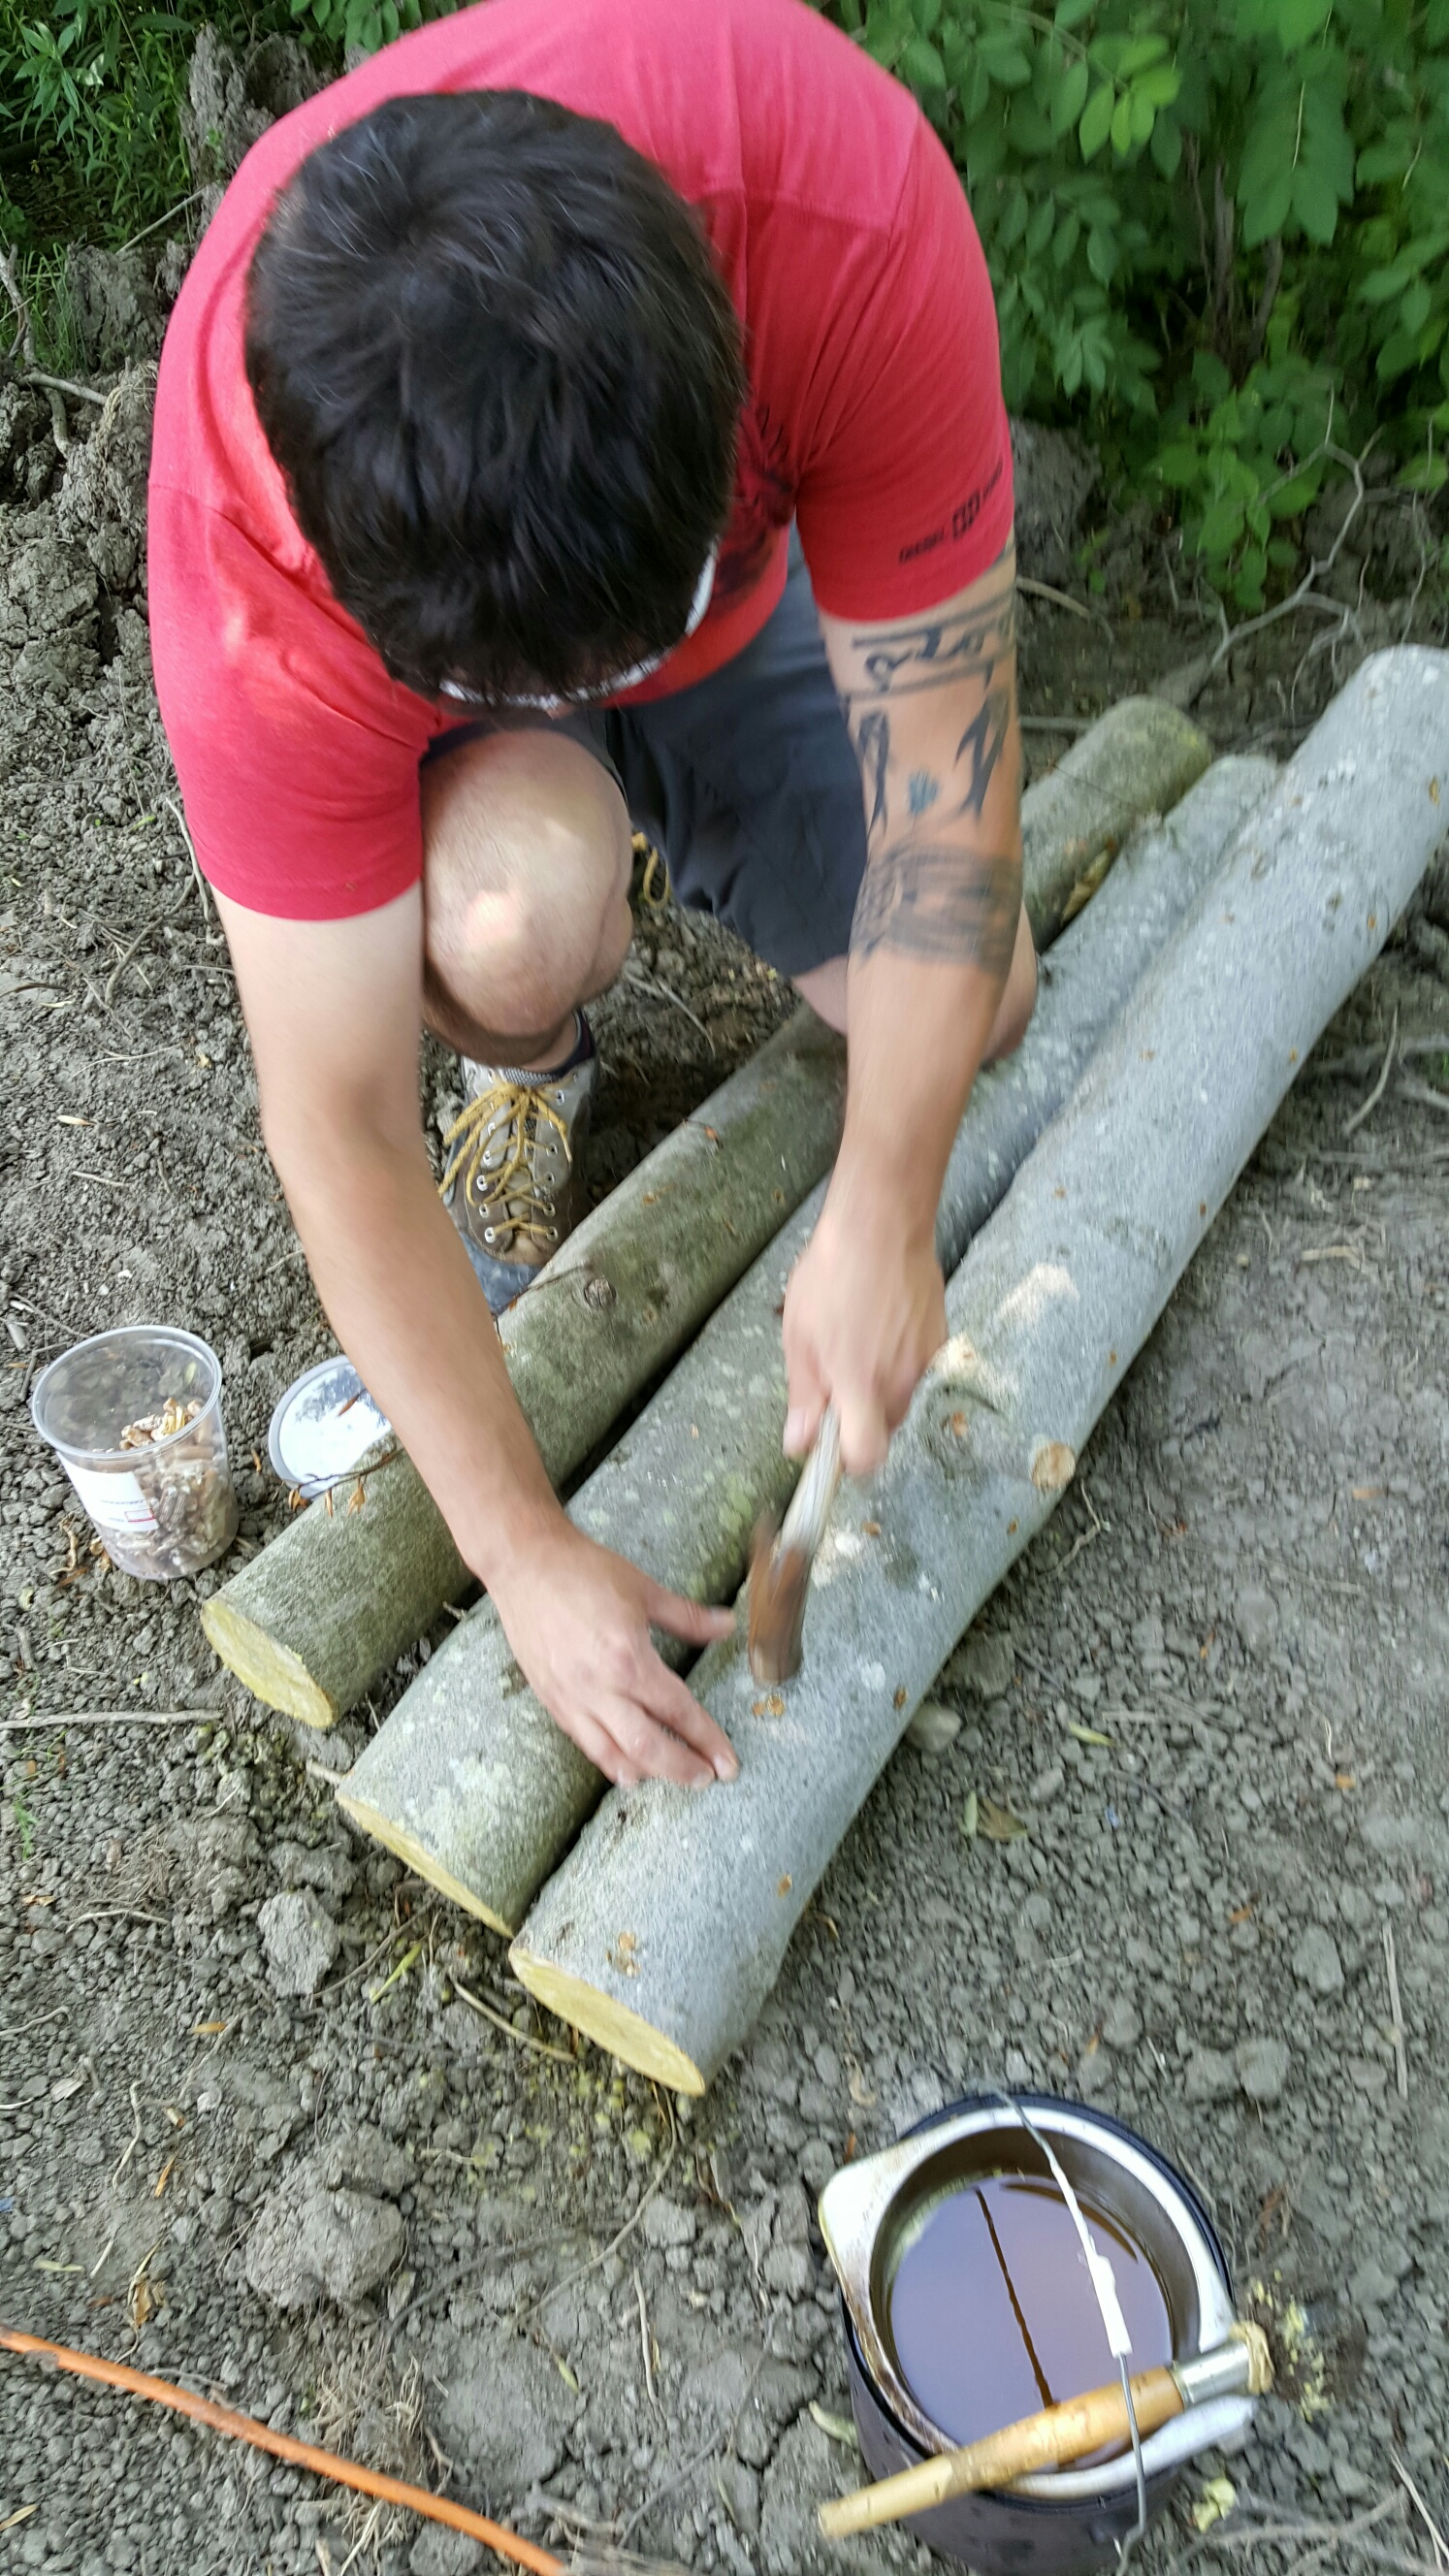 Hammering the spore coated dowel pieces into the log.